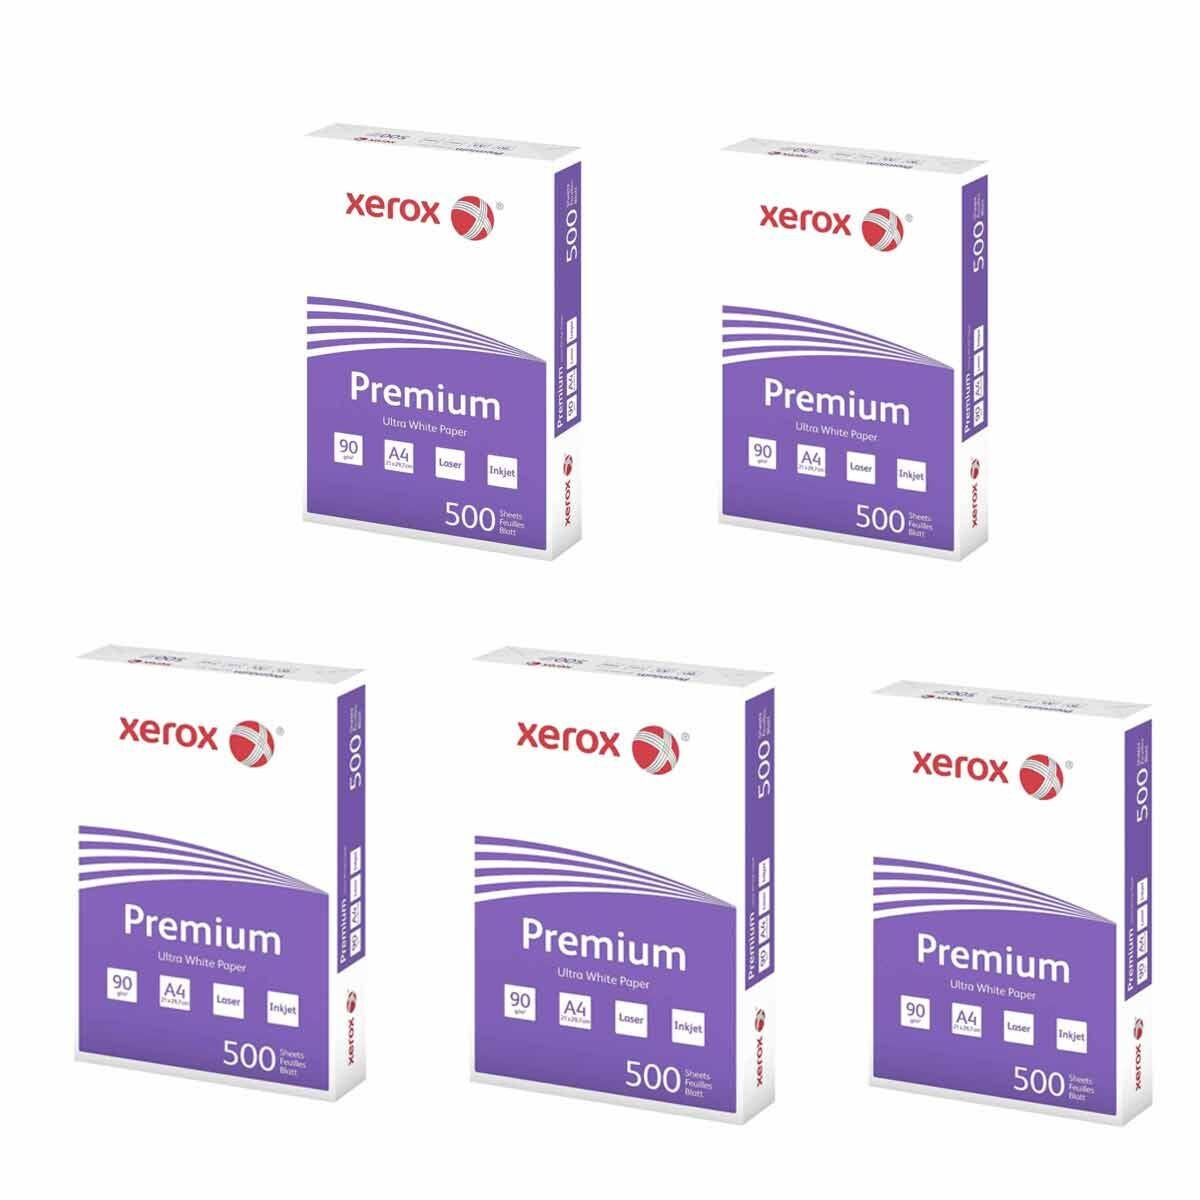 Xerox Premium A4 Paper 90gsm 500 Sheets Pack of 5